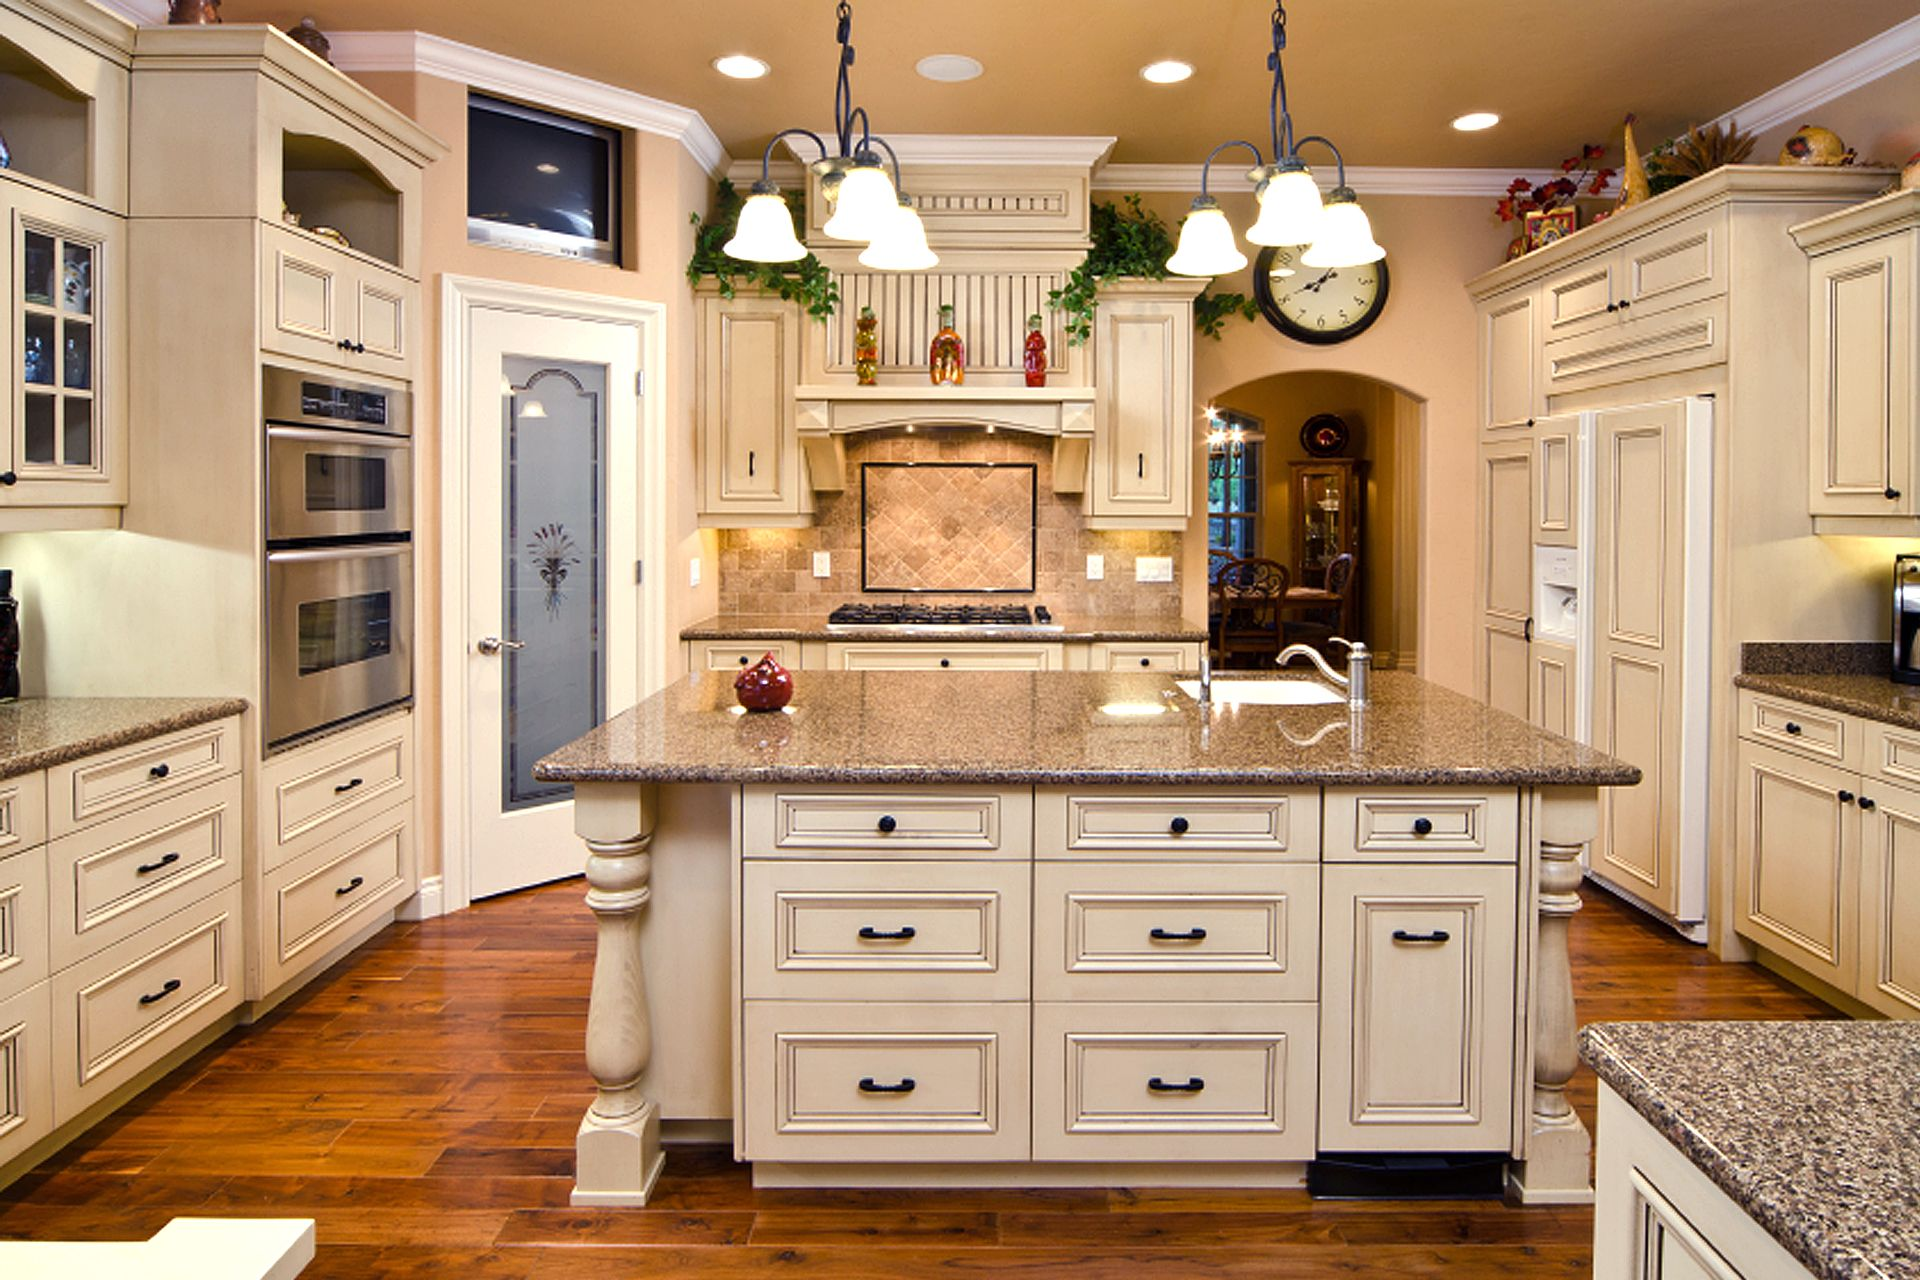 Kitchens With Images Antique White Kitchen Classic Kitchen Cabinets Antique White Kitchen Cabinets